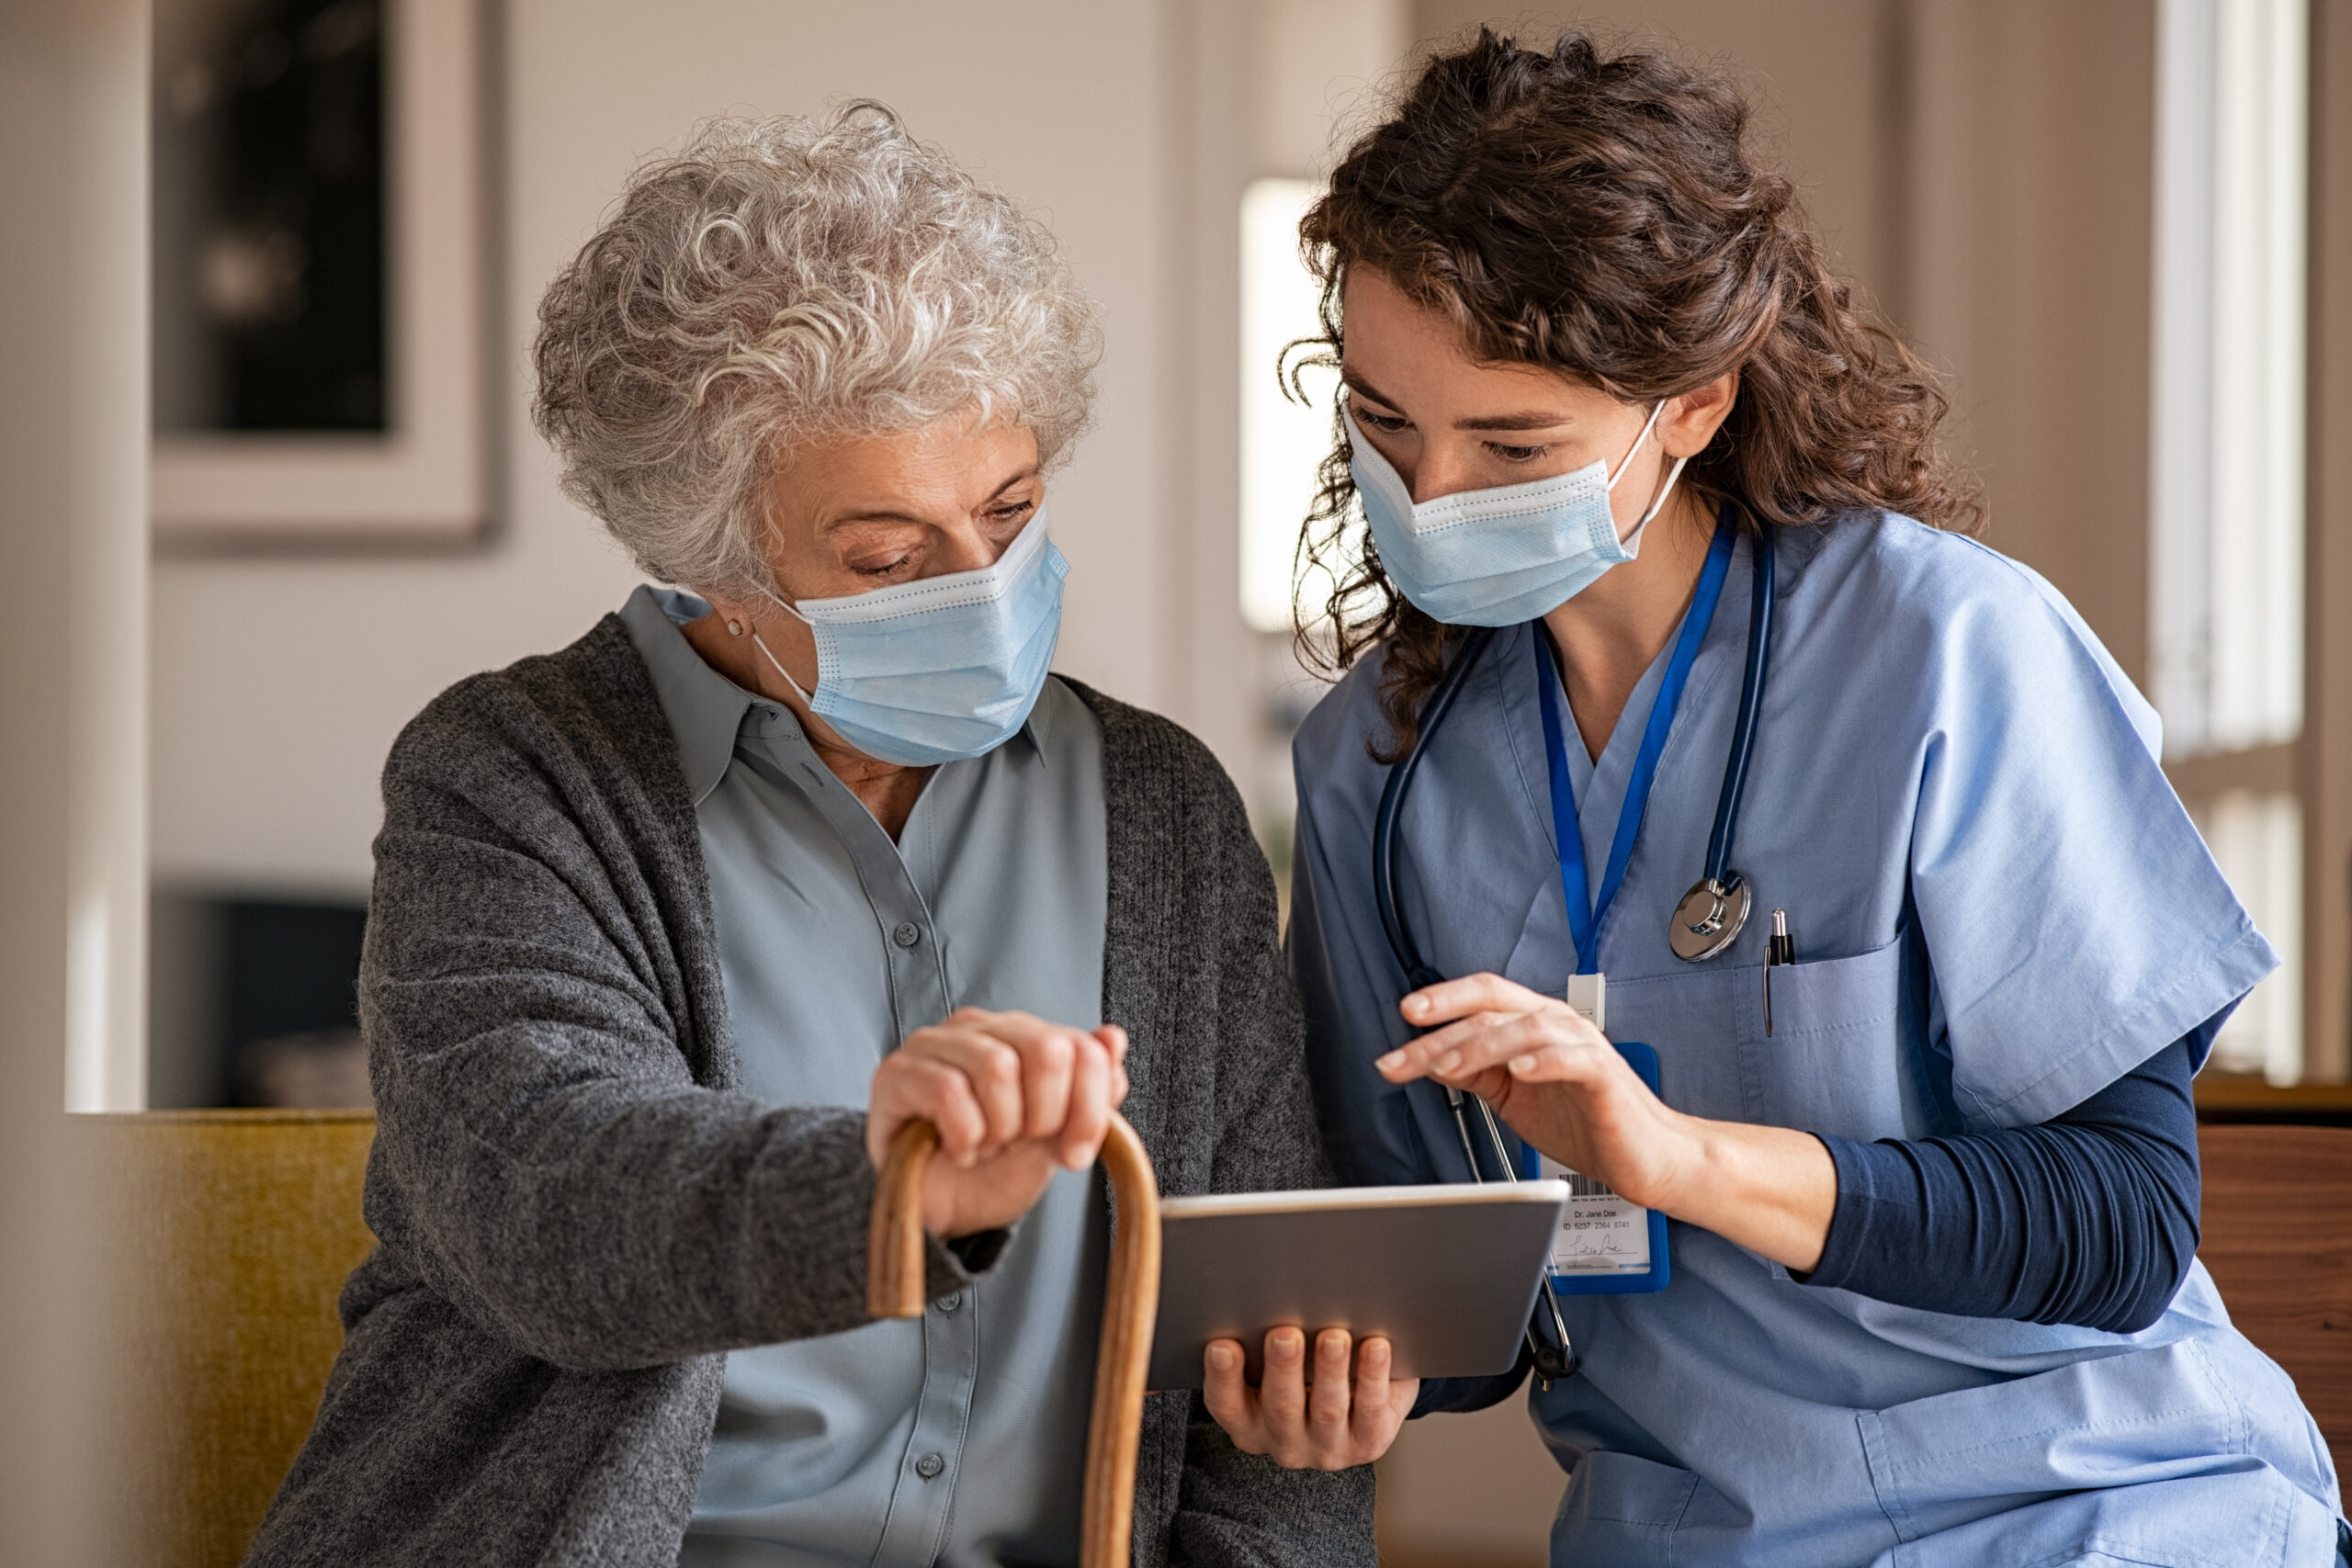 Young doctor and senior woman going through medical record on digital tablet during home visit wearing face protective mask. Old woman holding walking cane sitting with nurse while listen to the covid-19 therapy. Mature woman with doctor wearing surgical mask and using digital tablet during coronavirus pandemic.